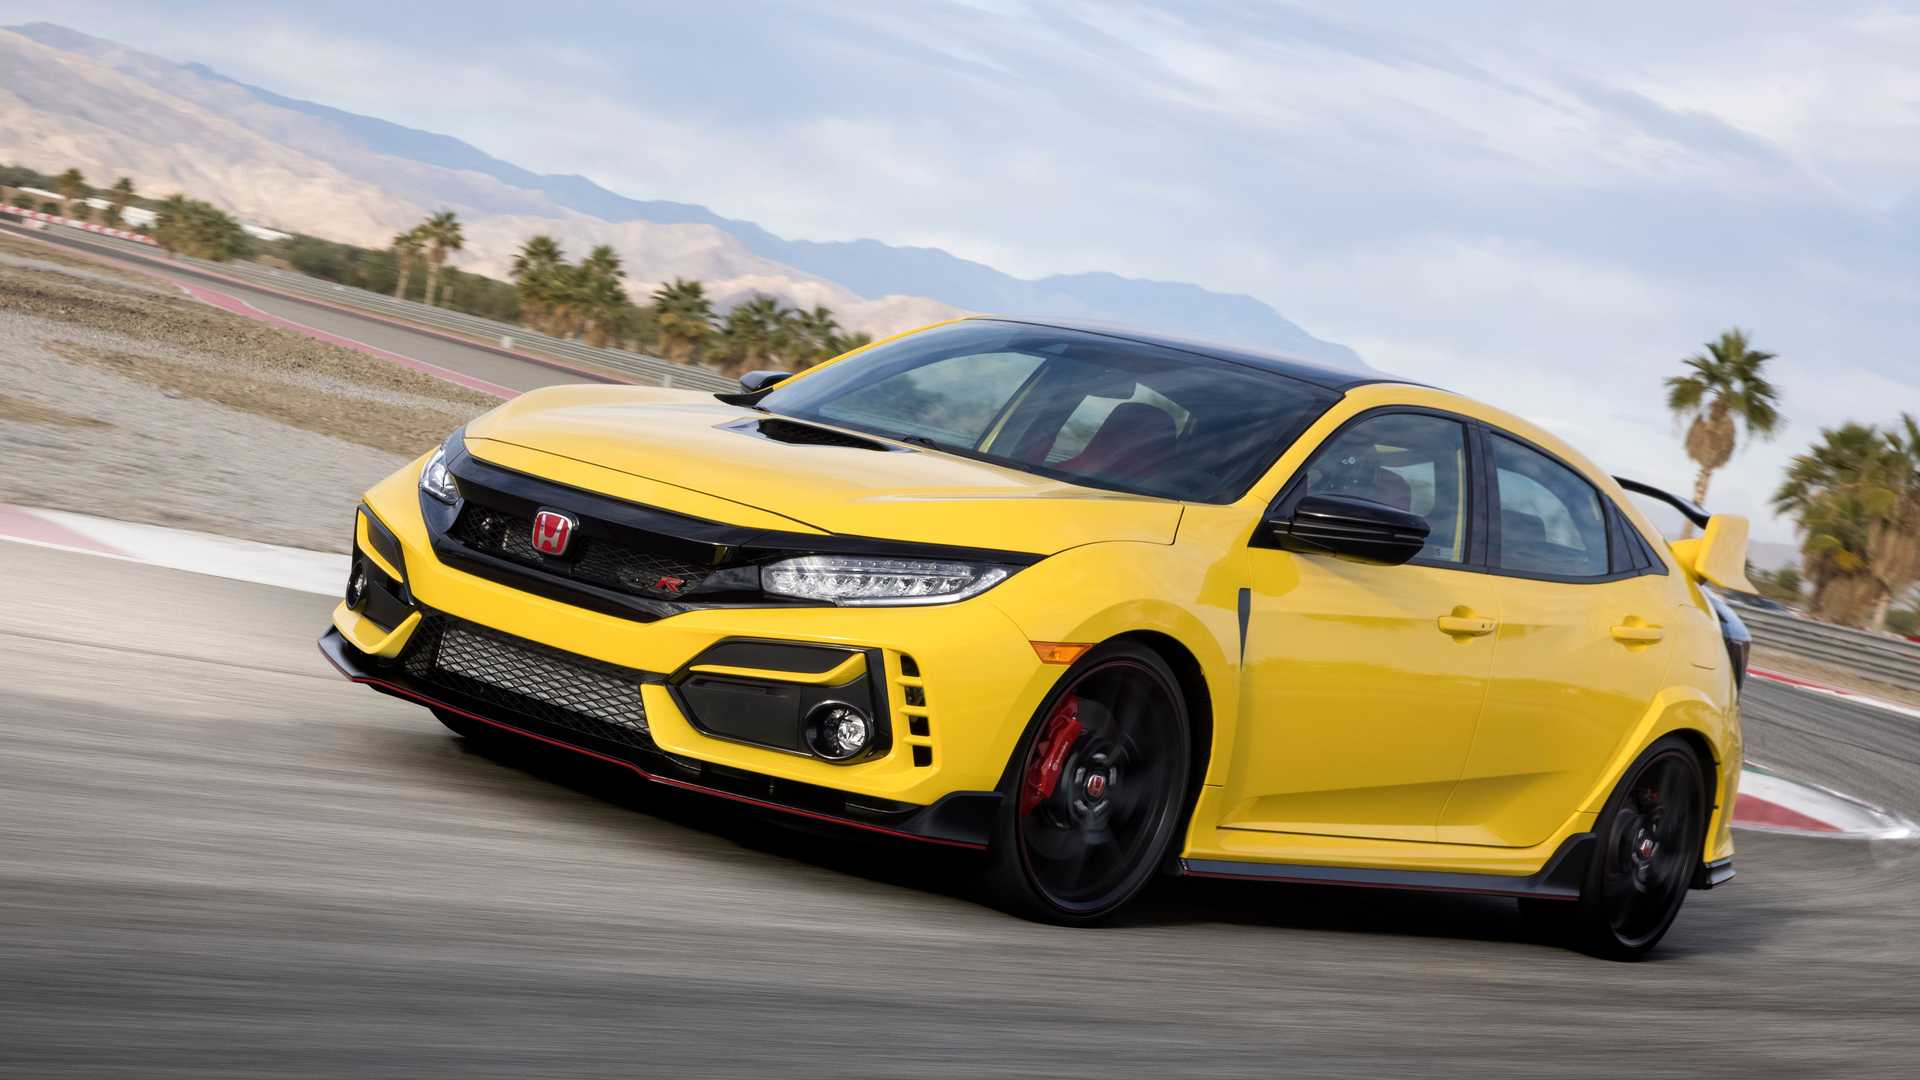 2021 Honda Civic Type R Will Be More Expensive